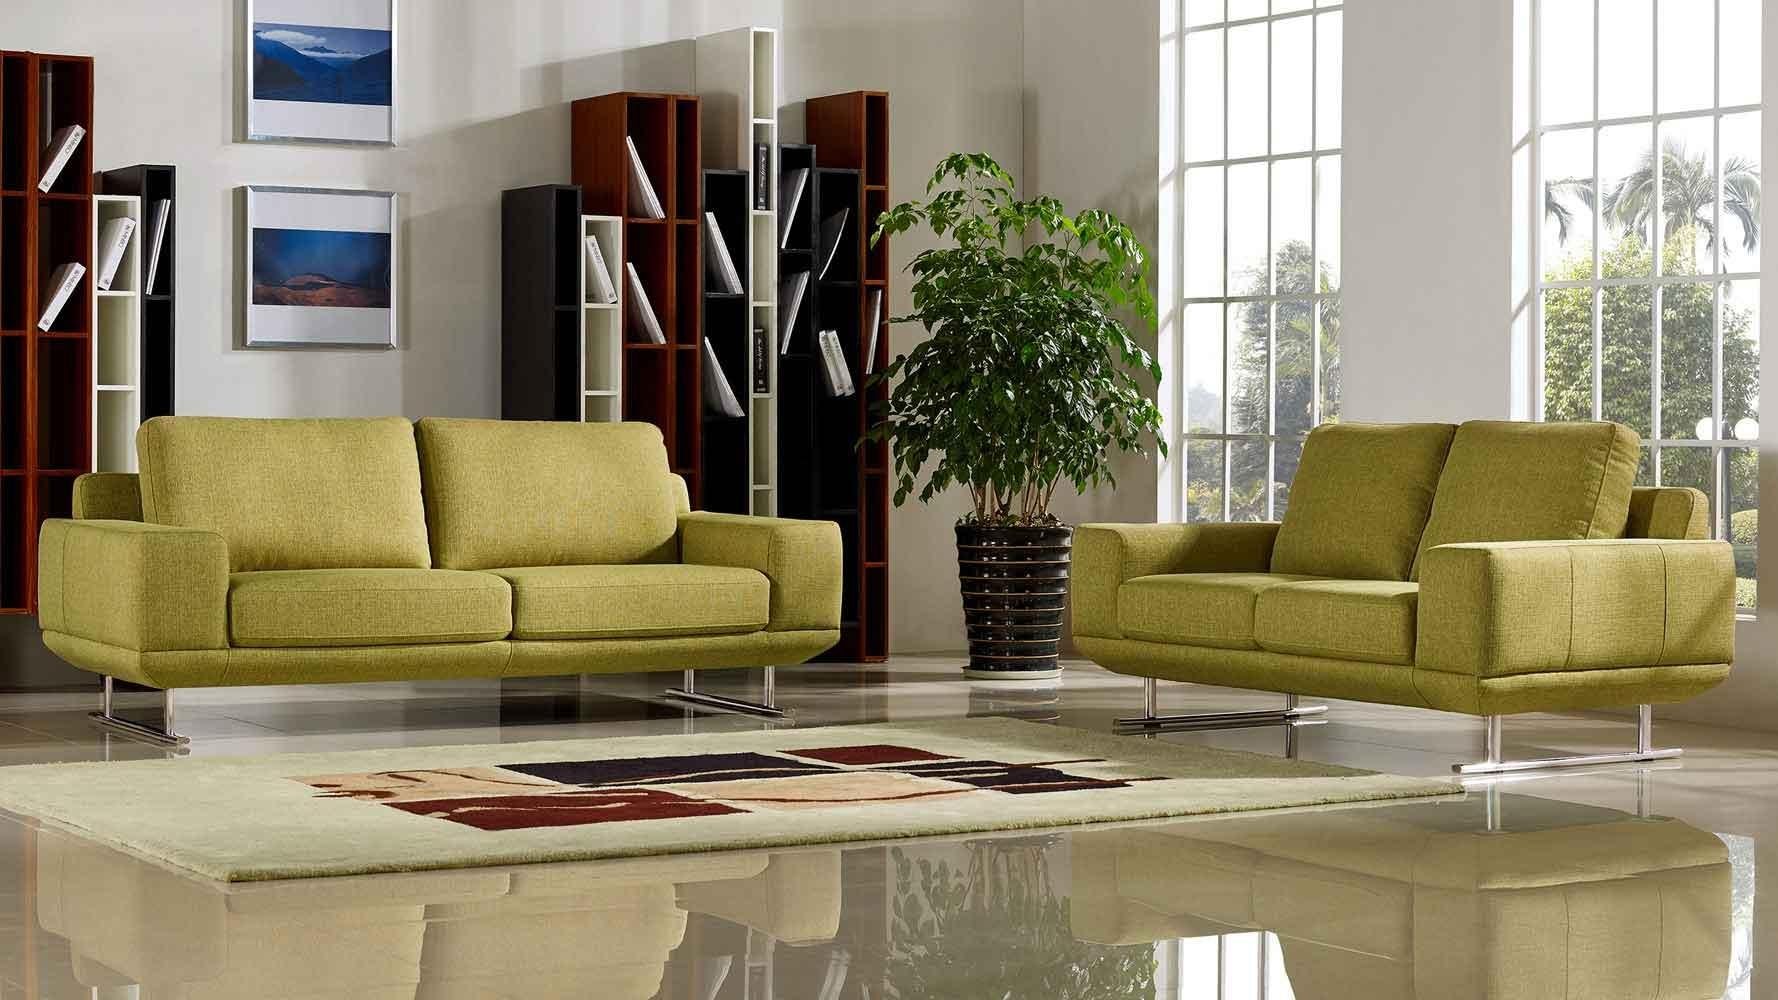 Modern Chartreuse Fabric Della Sofa And Loveseat Set | Zuri Furniture Pertaining To Chartreuse Sofas (View 3 of 20)